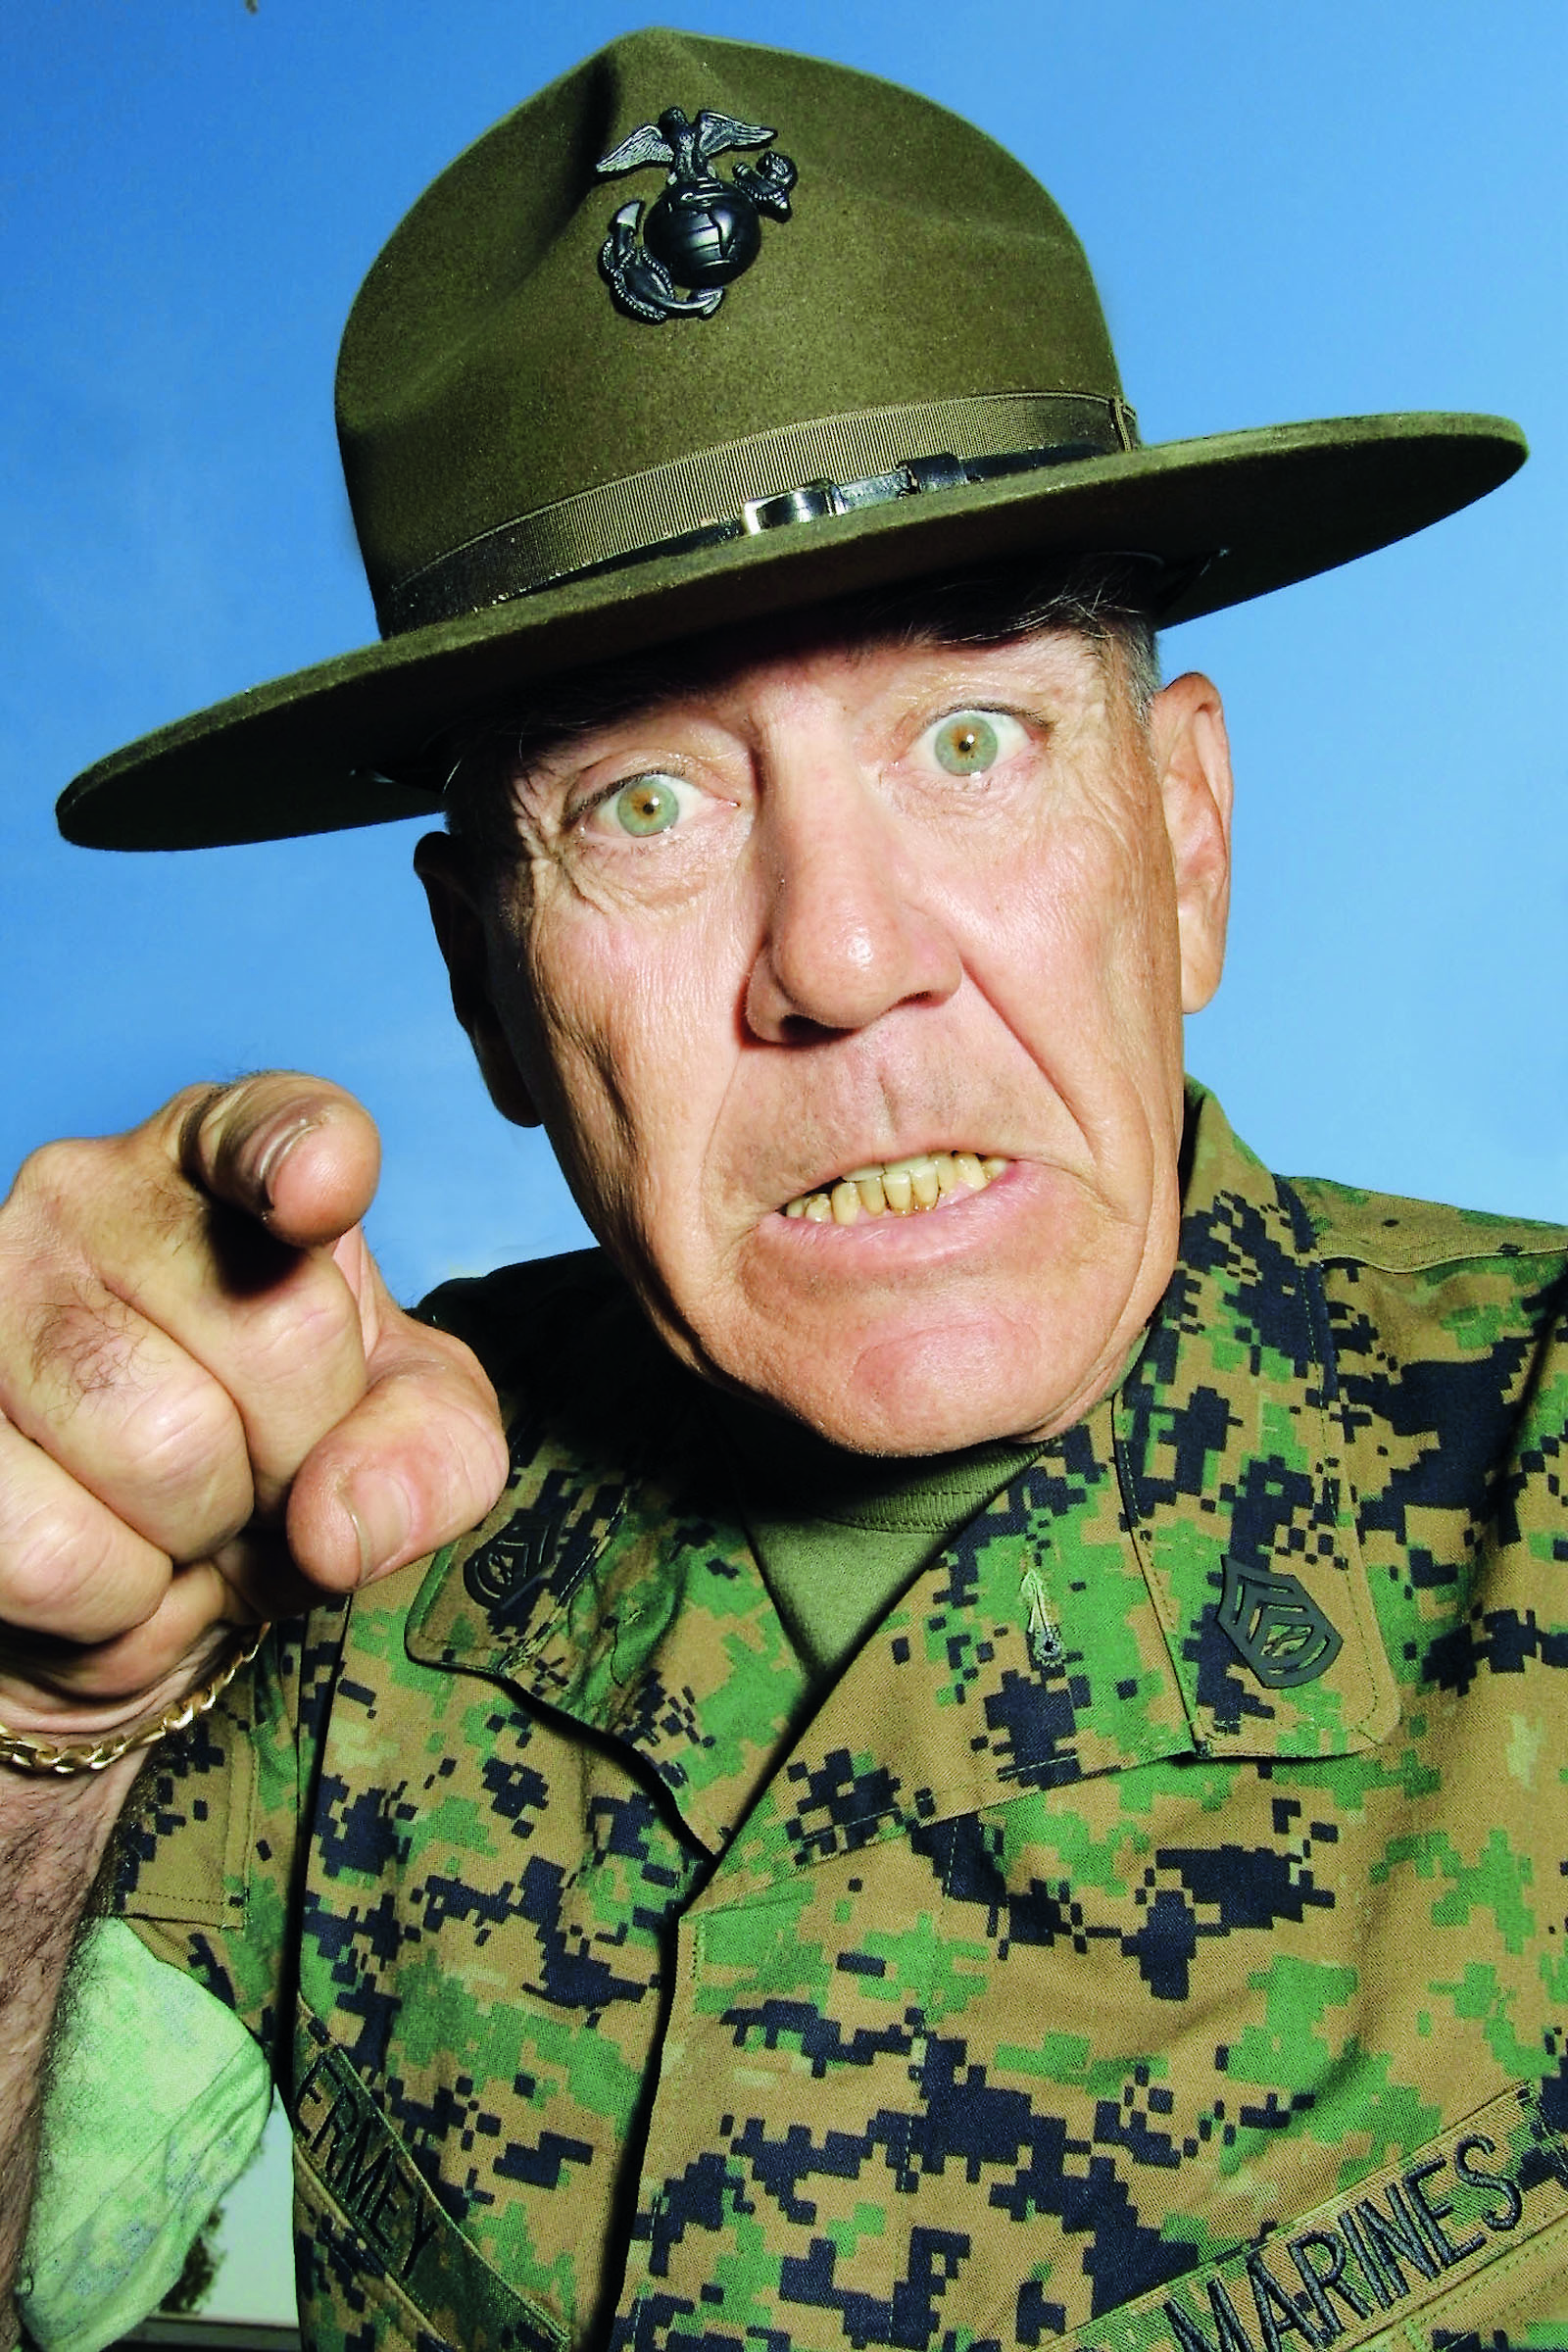 R. Lee Ermey often plays the role of Marine drill instructor which he made famous in Full Metal Jacket.